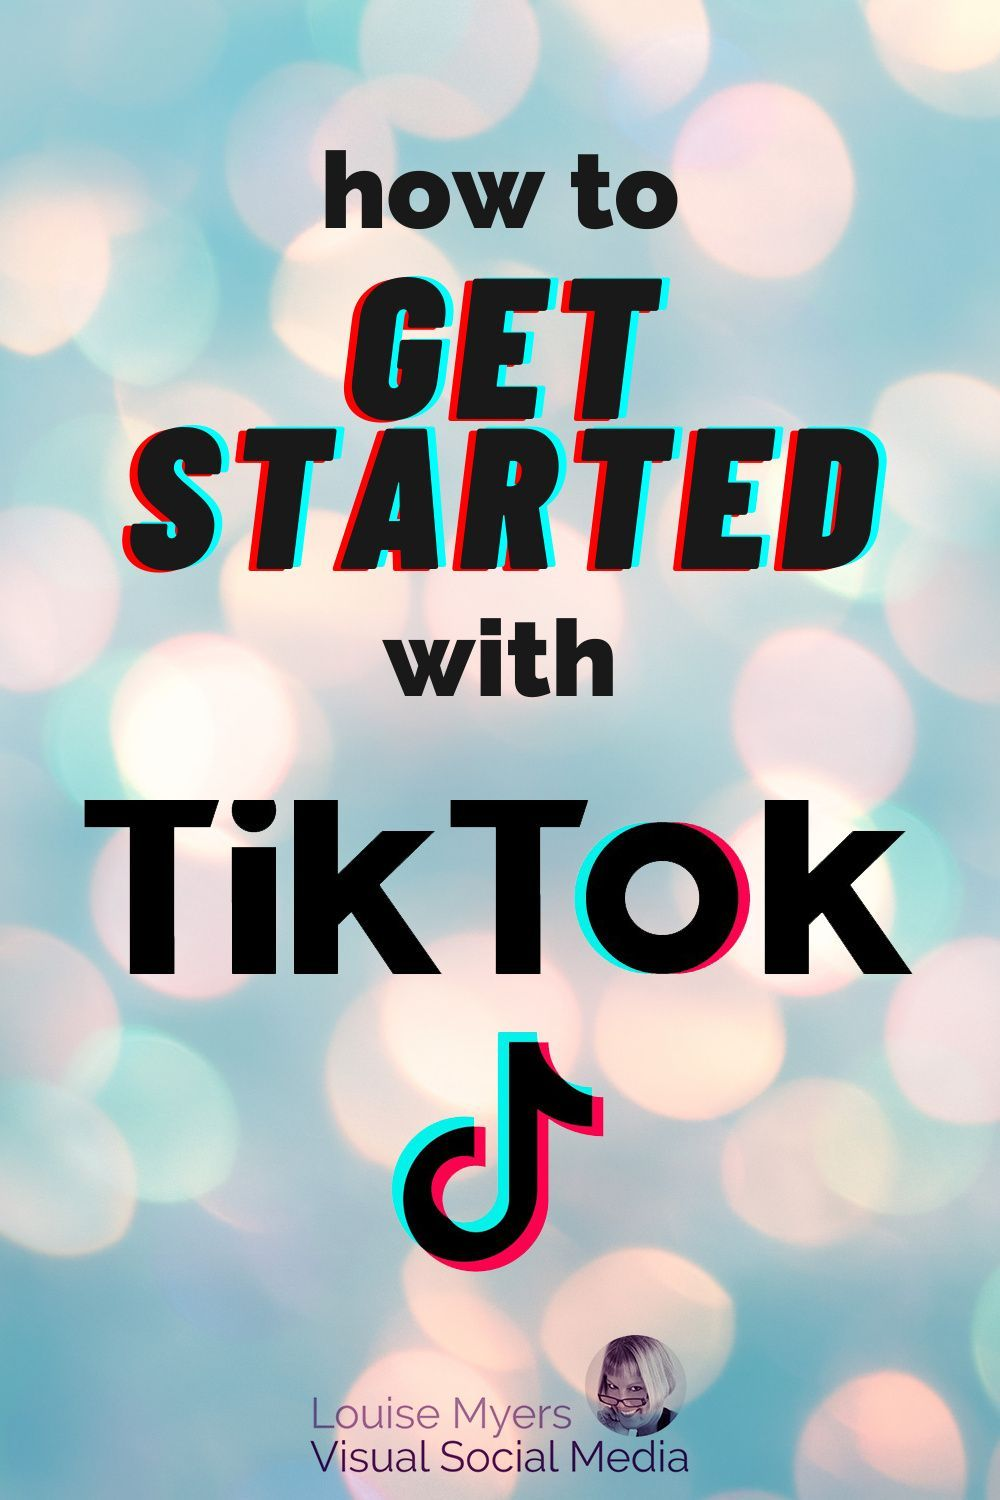 Make 100 Per Day Online With Tik Tok How To Earn Money From Tiktok 2020 Without How To Get Followers Marketing Strategy Social Media Social Media Business